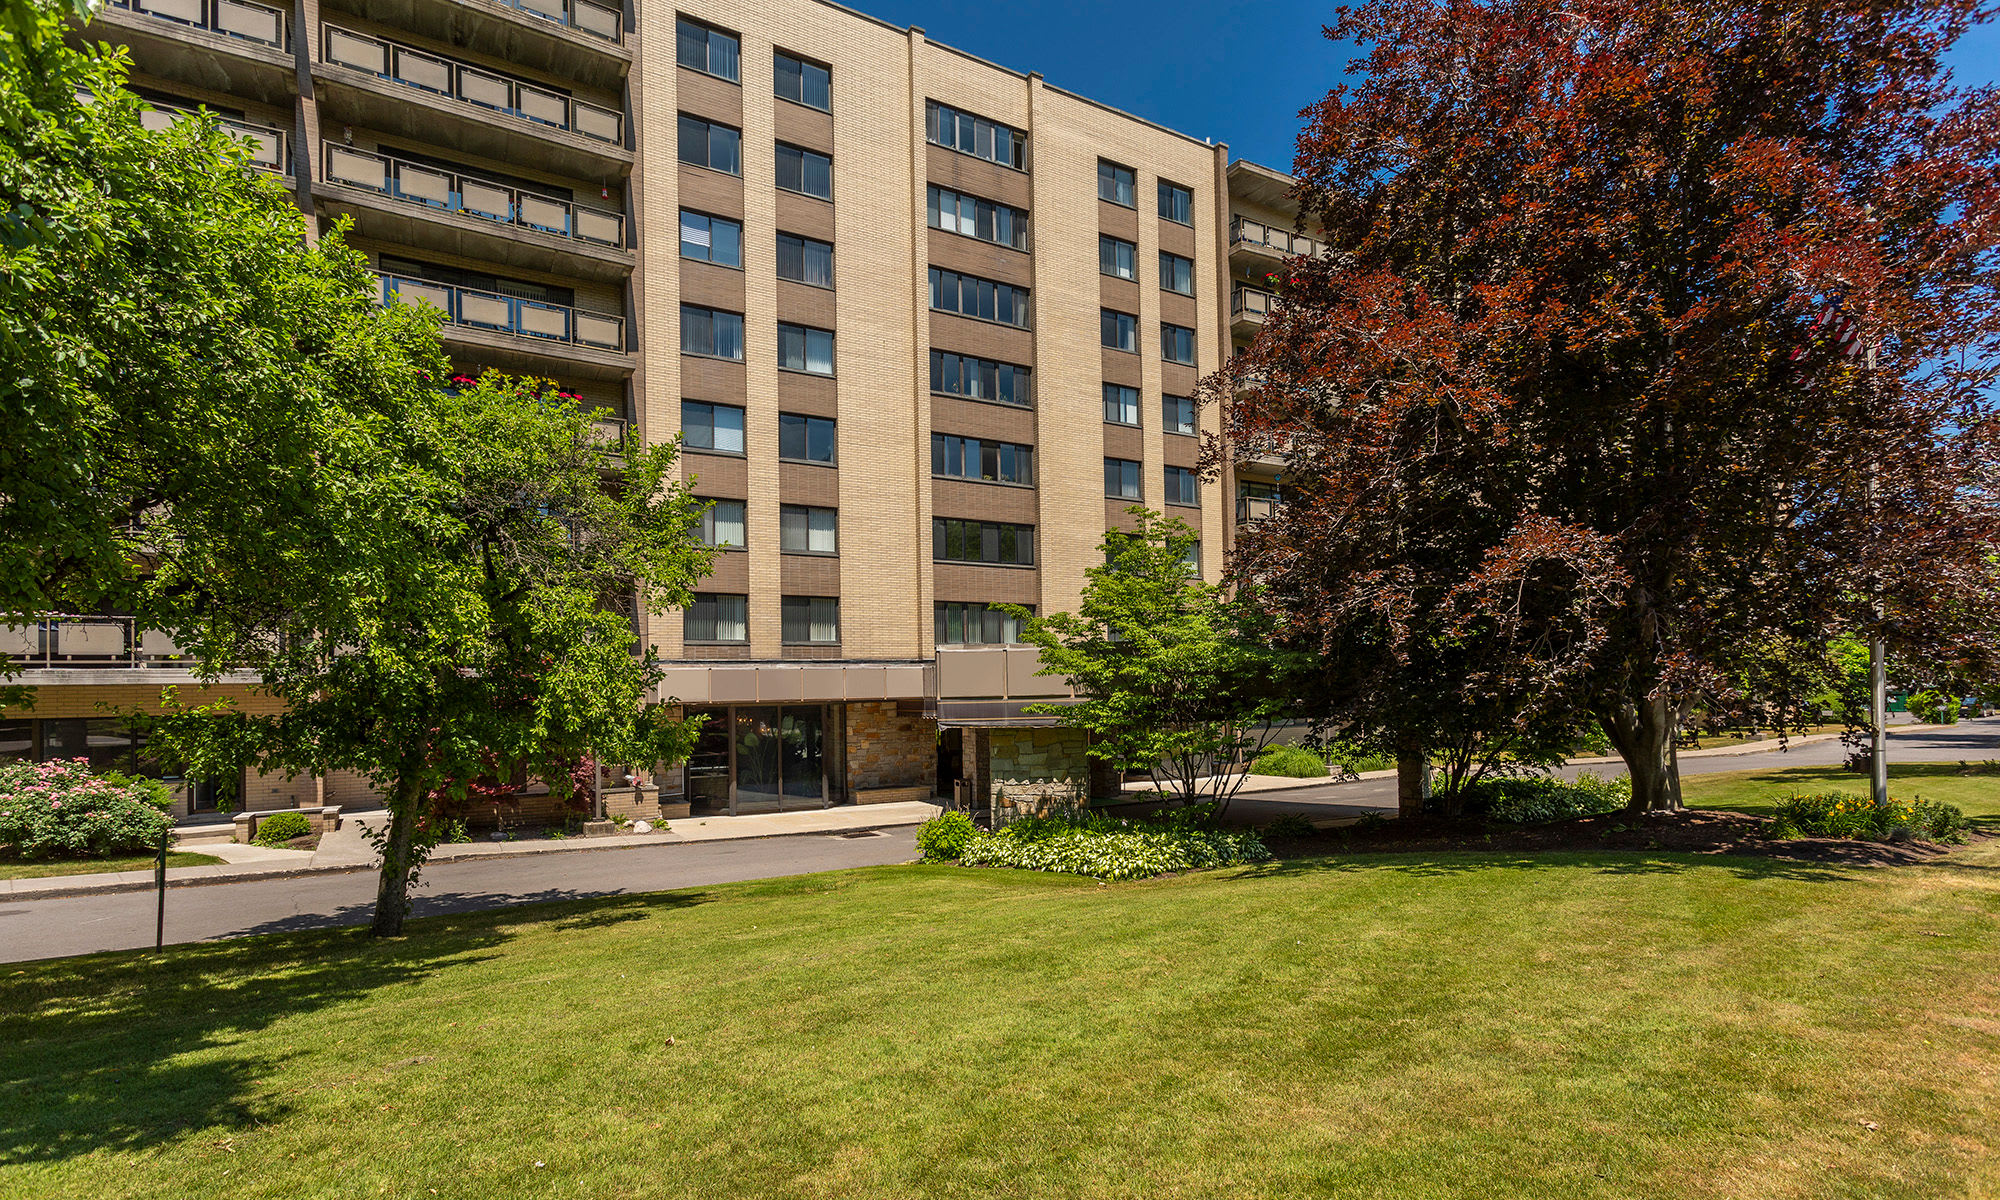 Apartments for rent in The Venue in Rochester, New York